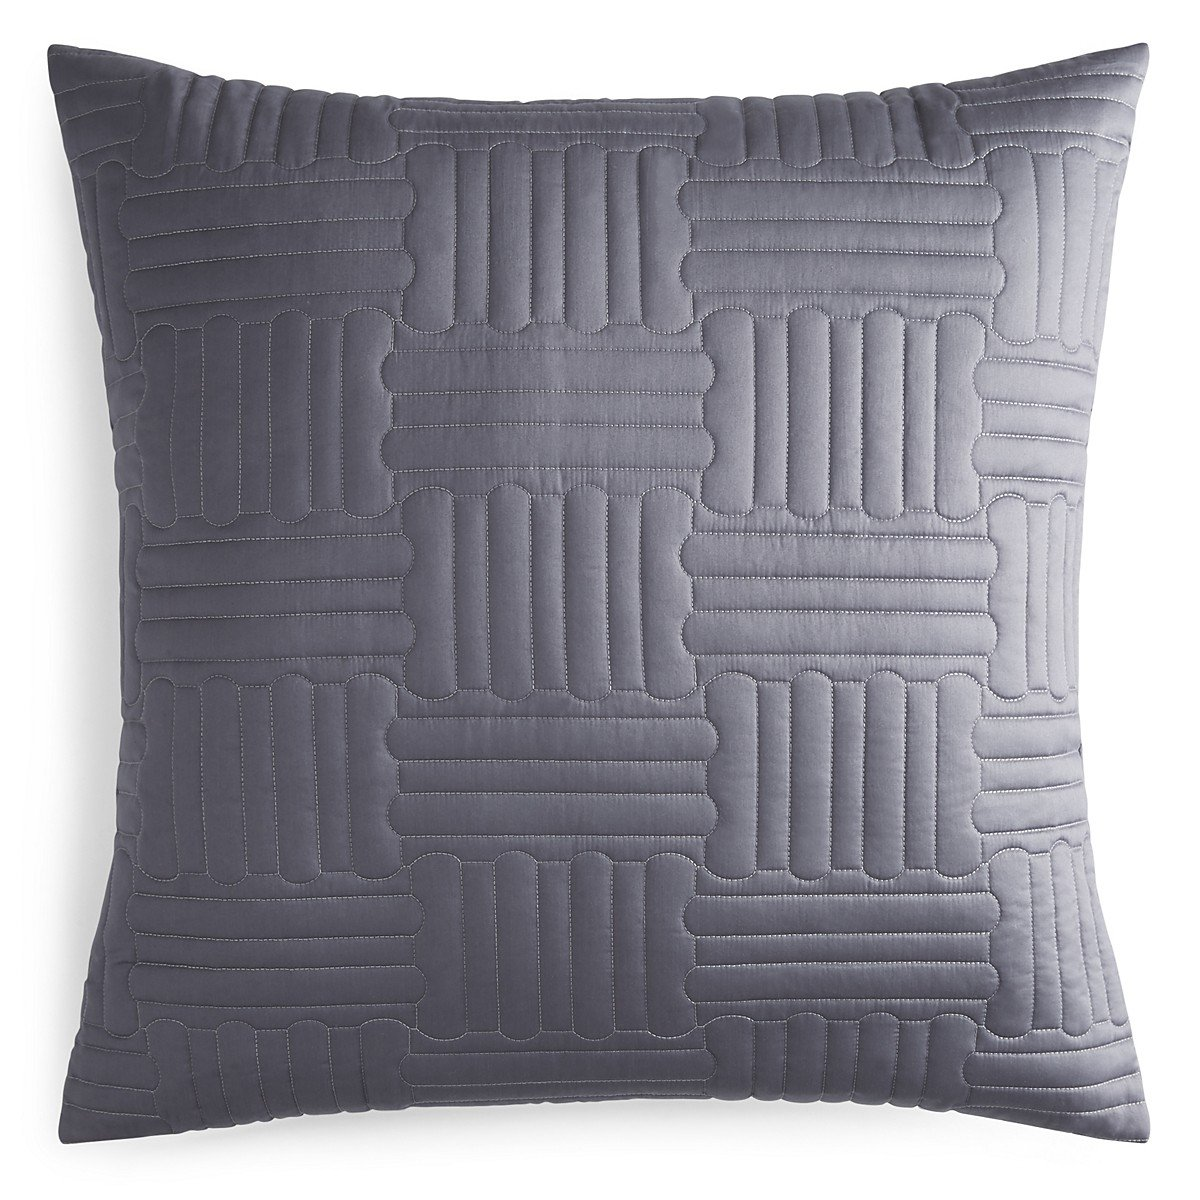 Pratesi Hotel Sweet Hotel Up and Down Cotton Quilted Euro Decorative Pillow Grey Made In Italy